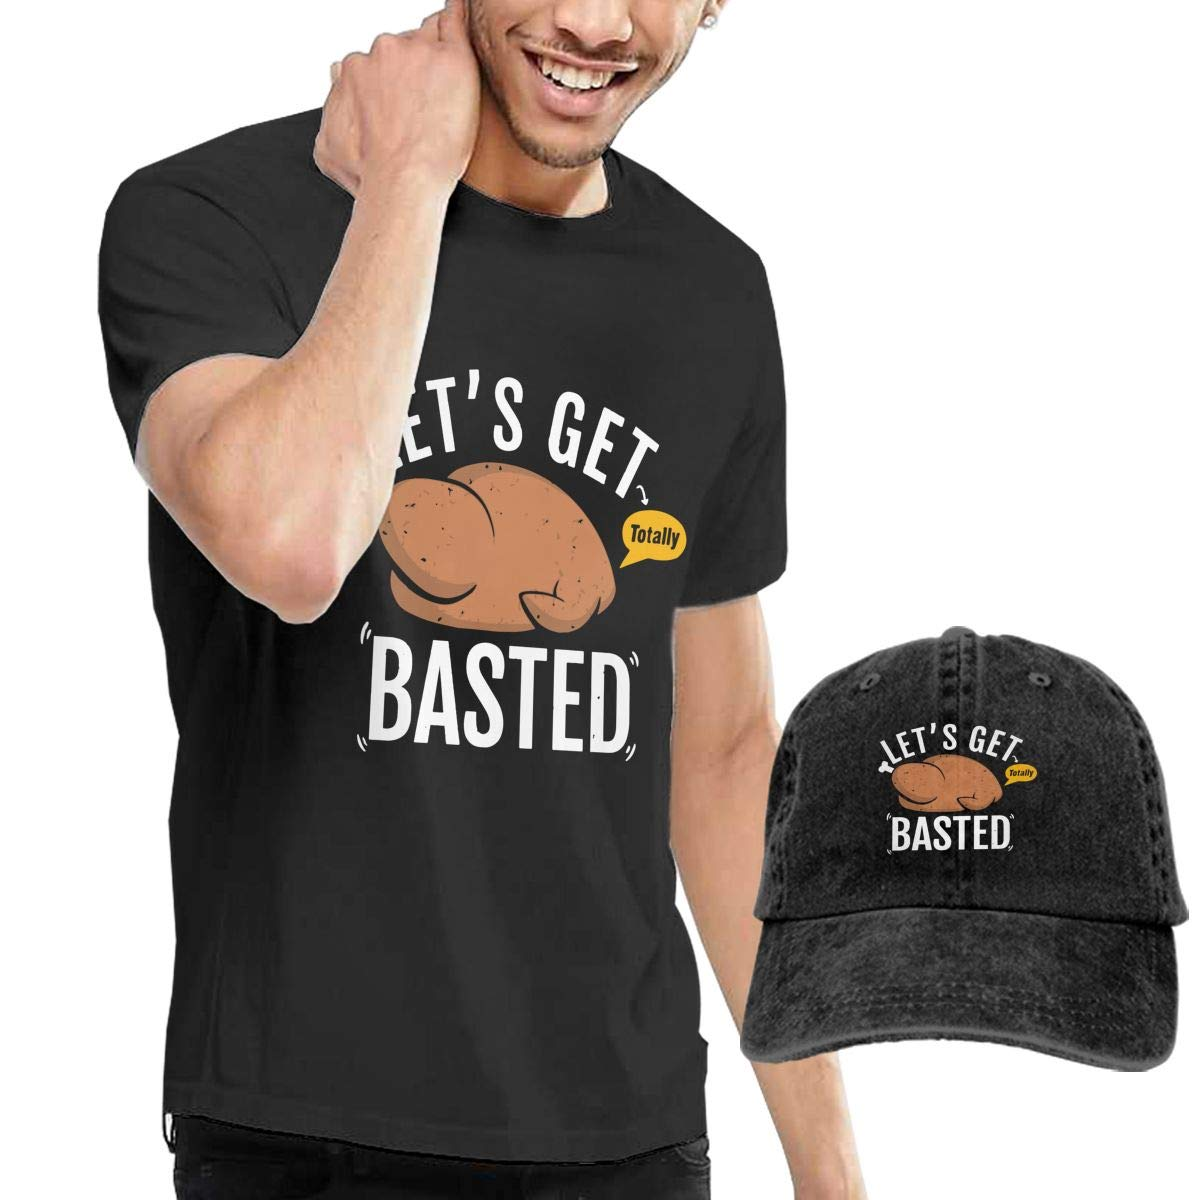 WWTBBJ-B Lets Get Totally Basted This Thanksgiving Adult Mens Sportstyle T Shirt and Fishing Jean Headgear